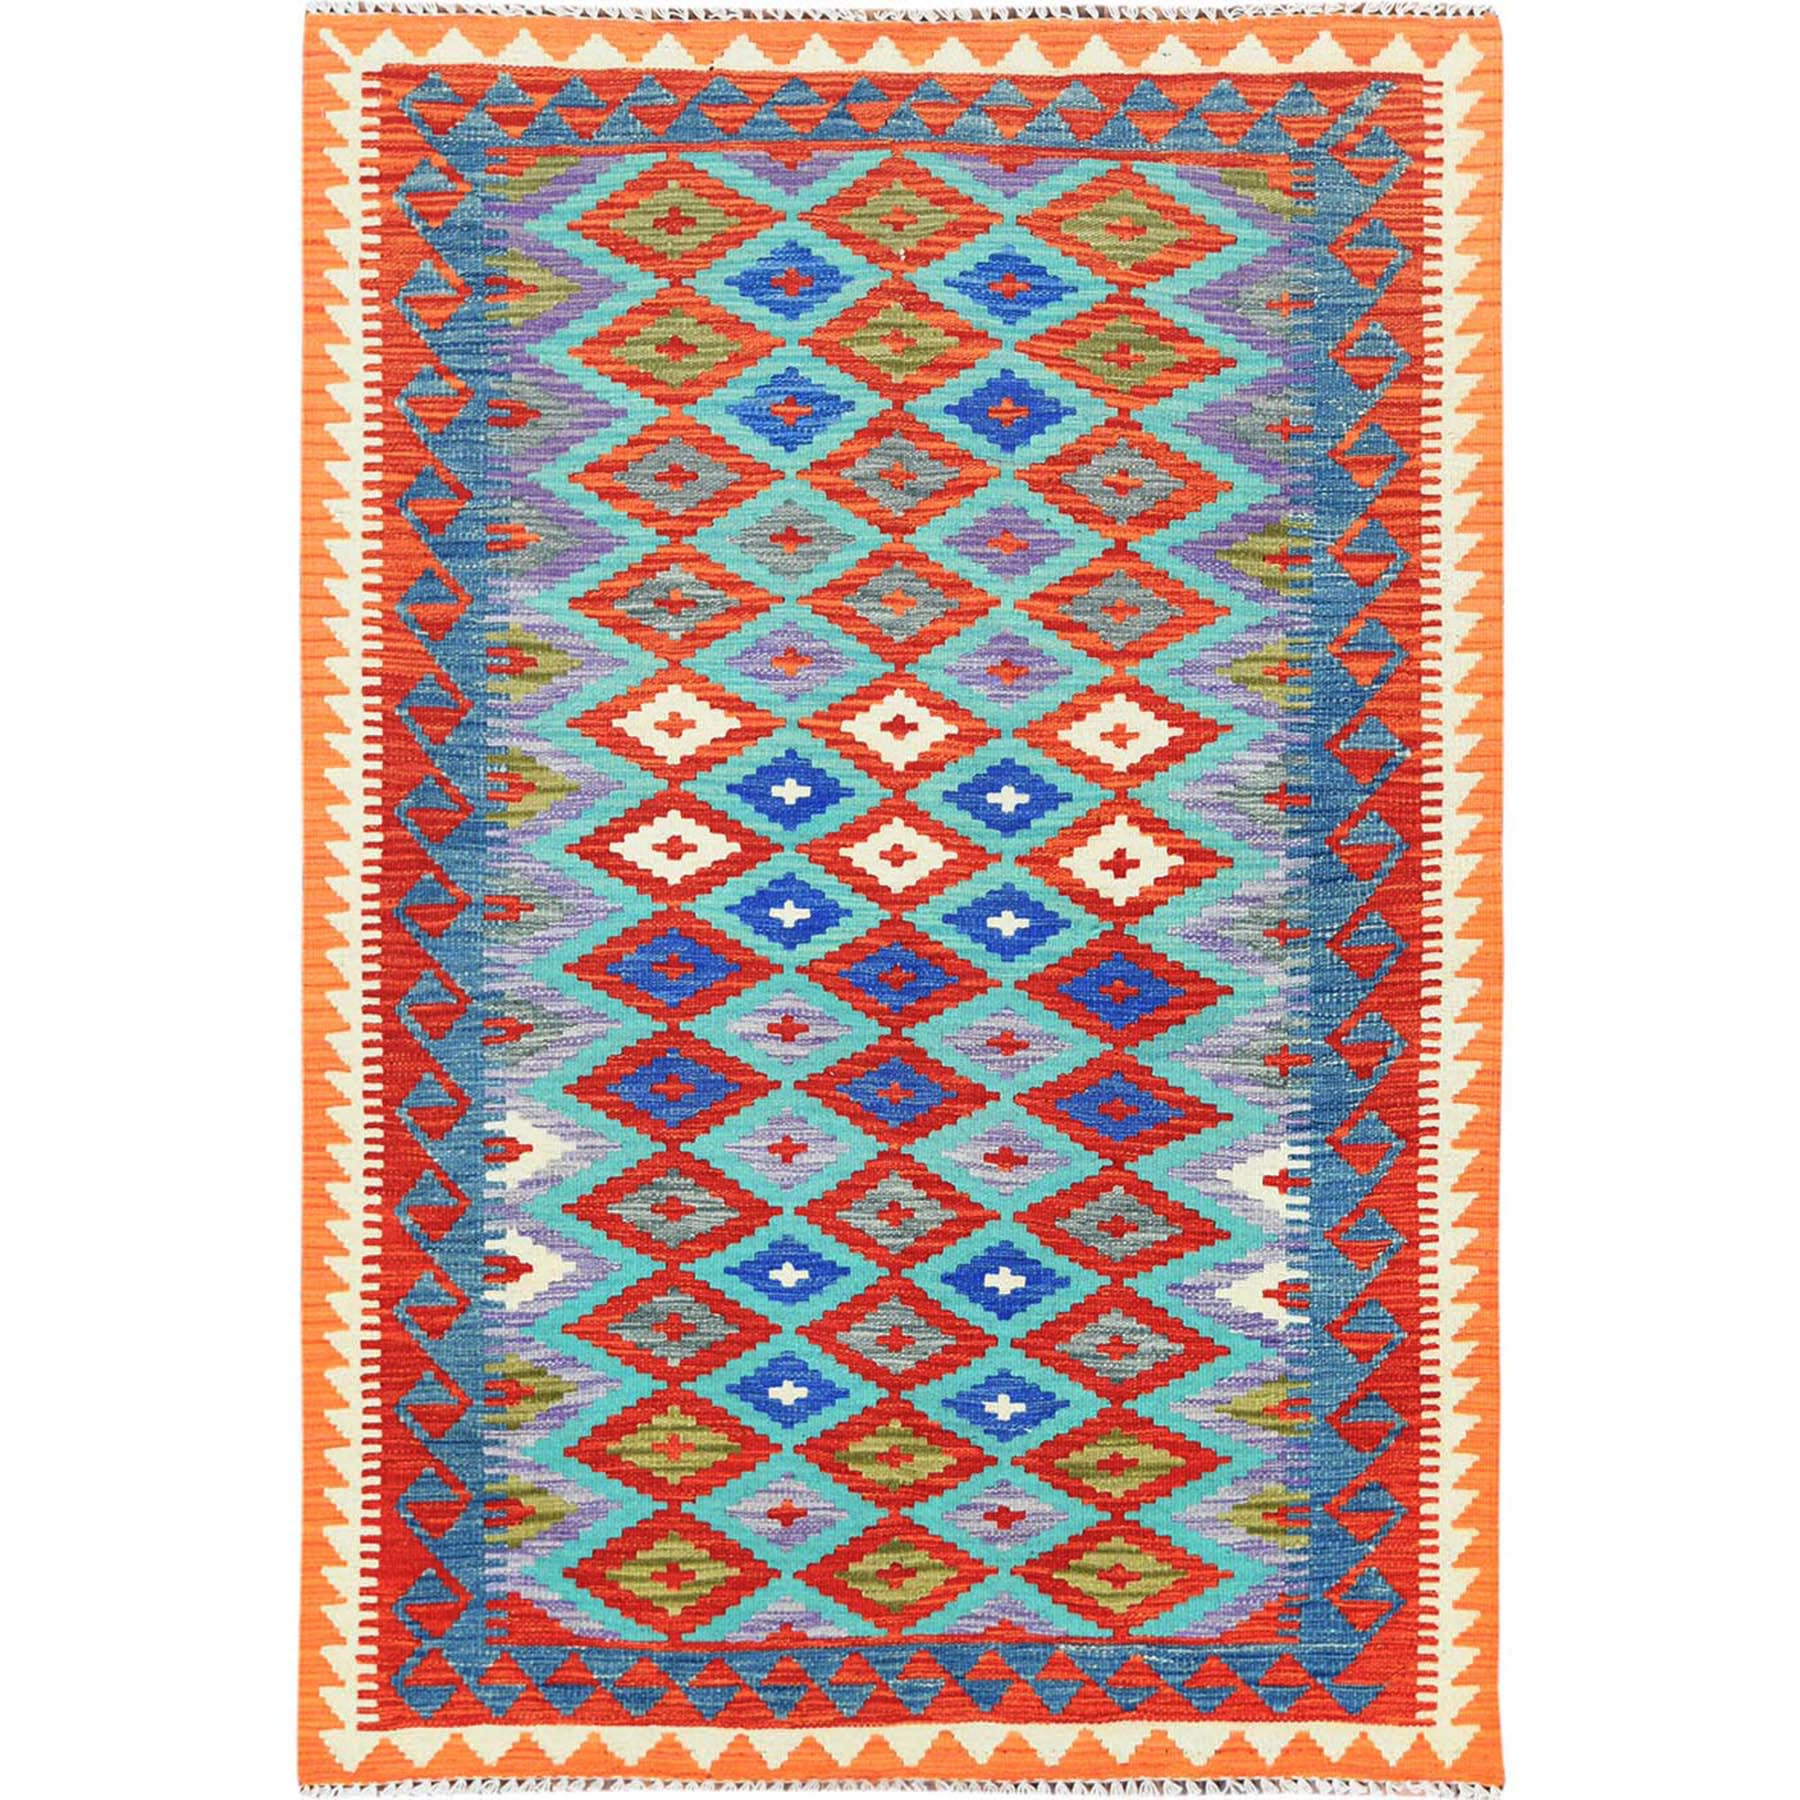 "4'1""x6' Colorful Geometric Design Shiny Wool Reversible Flat Weave Afghan Kilim Hand Woven Oriental Rug"